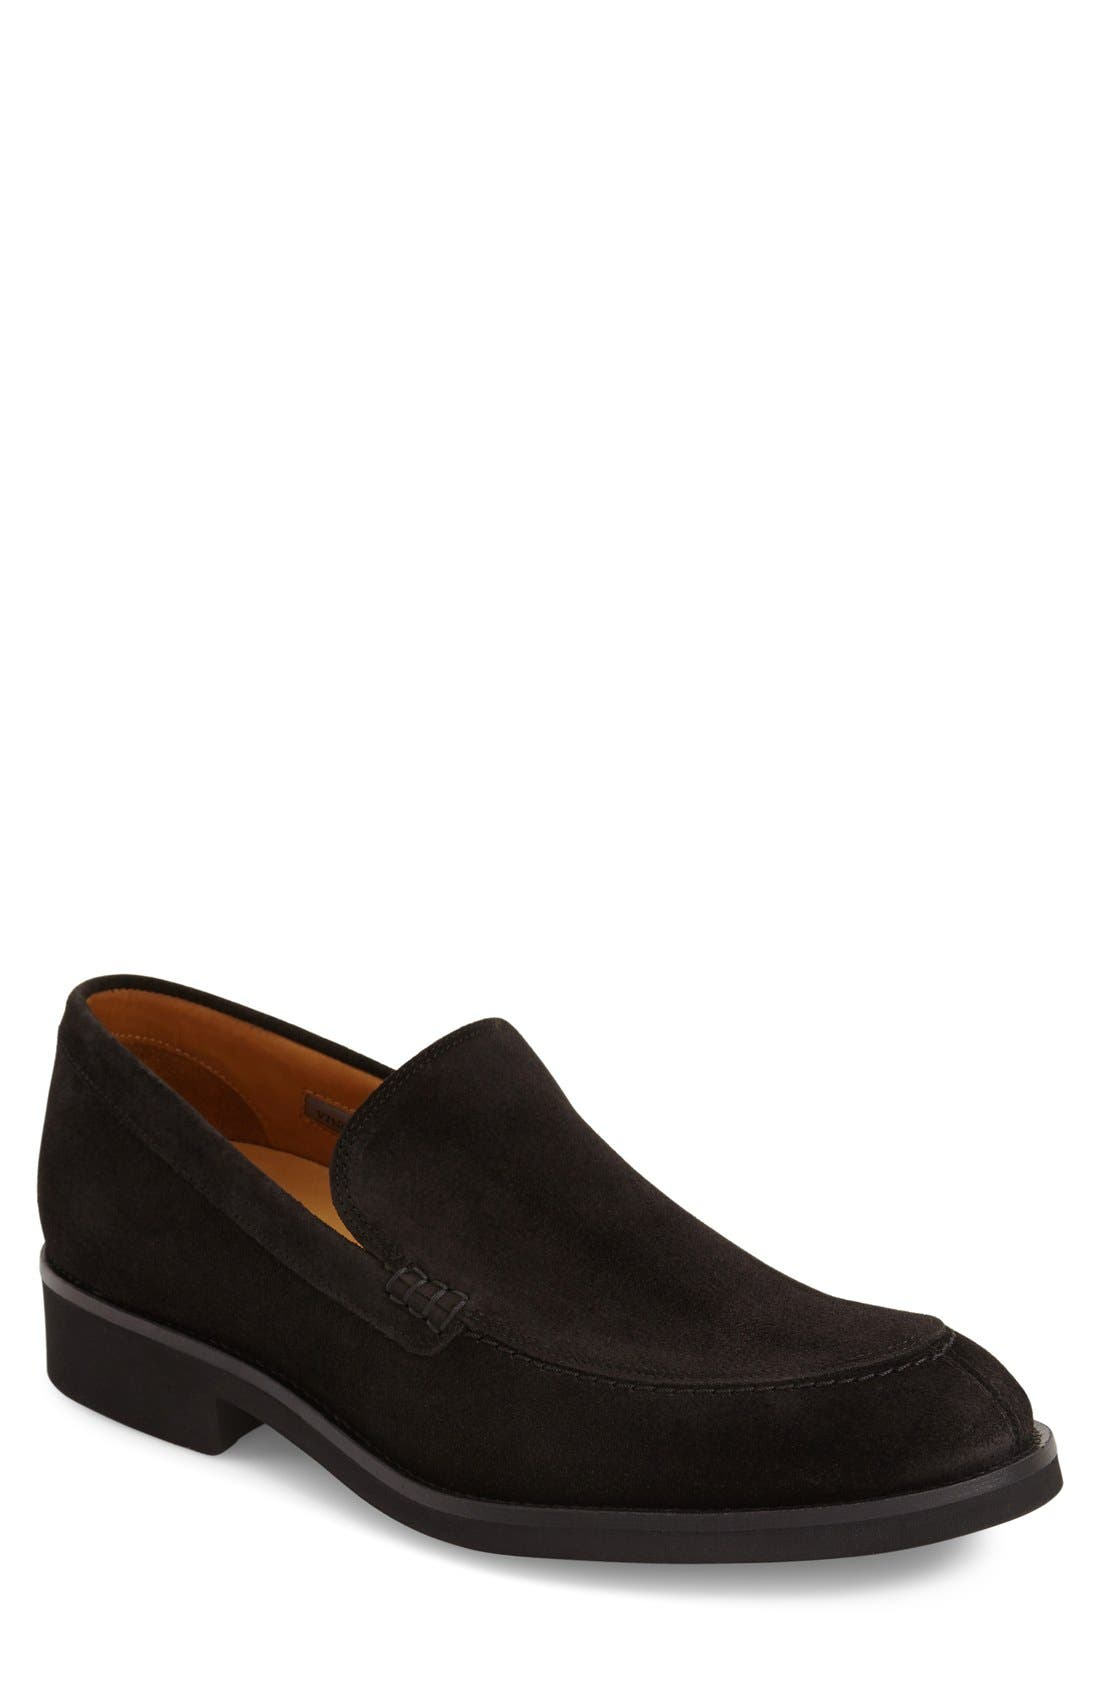 Vince Camuto 'Arleigh' Loafer (Men)